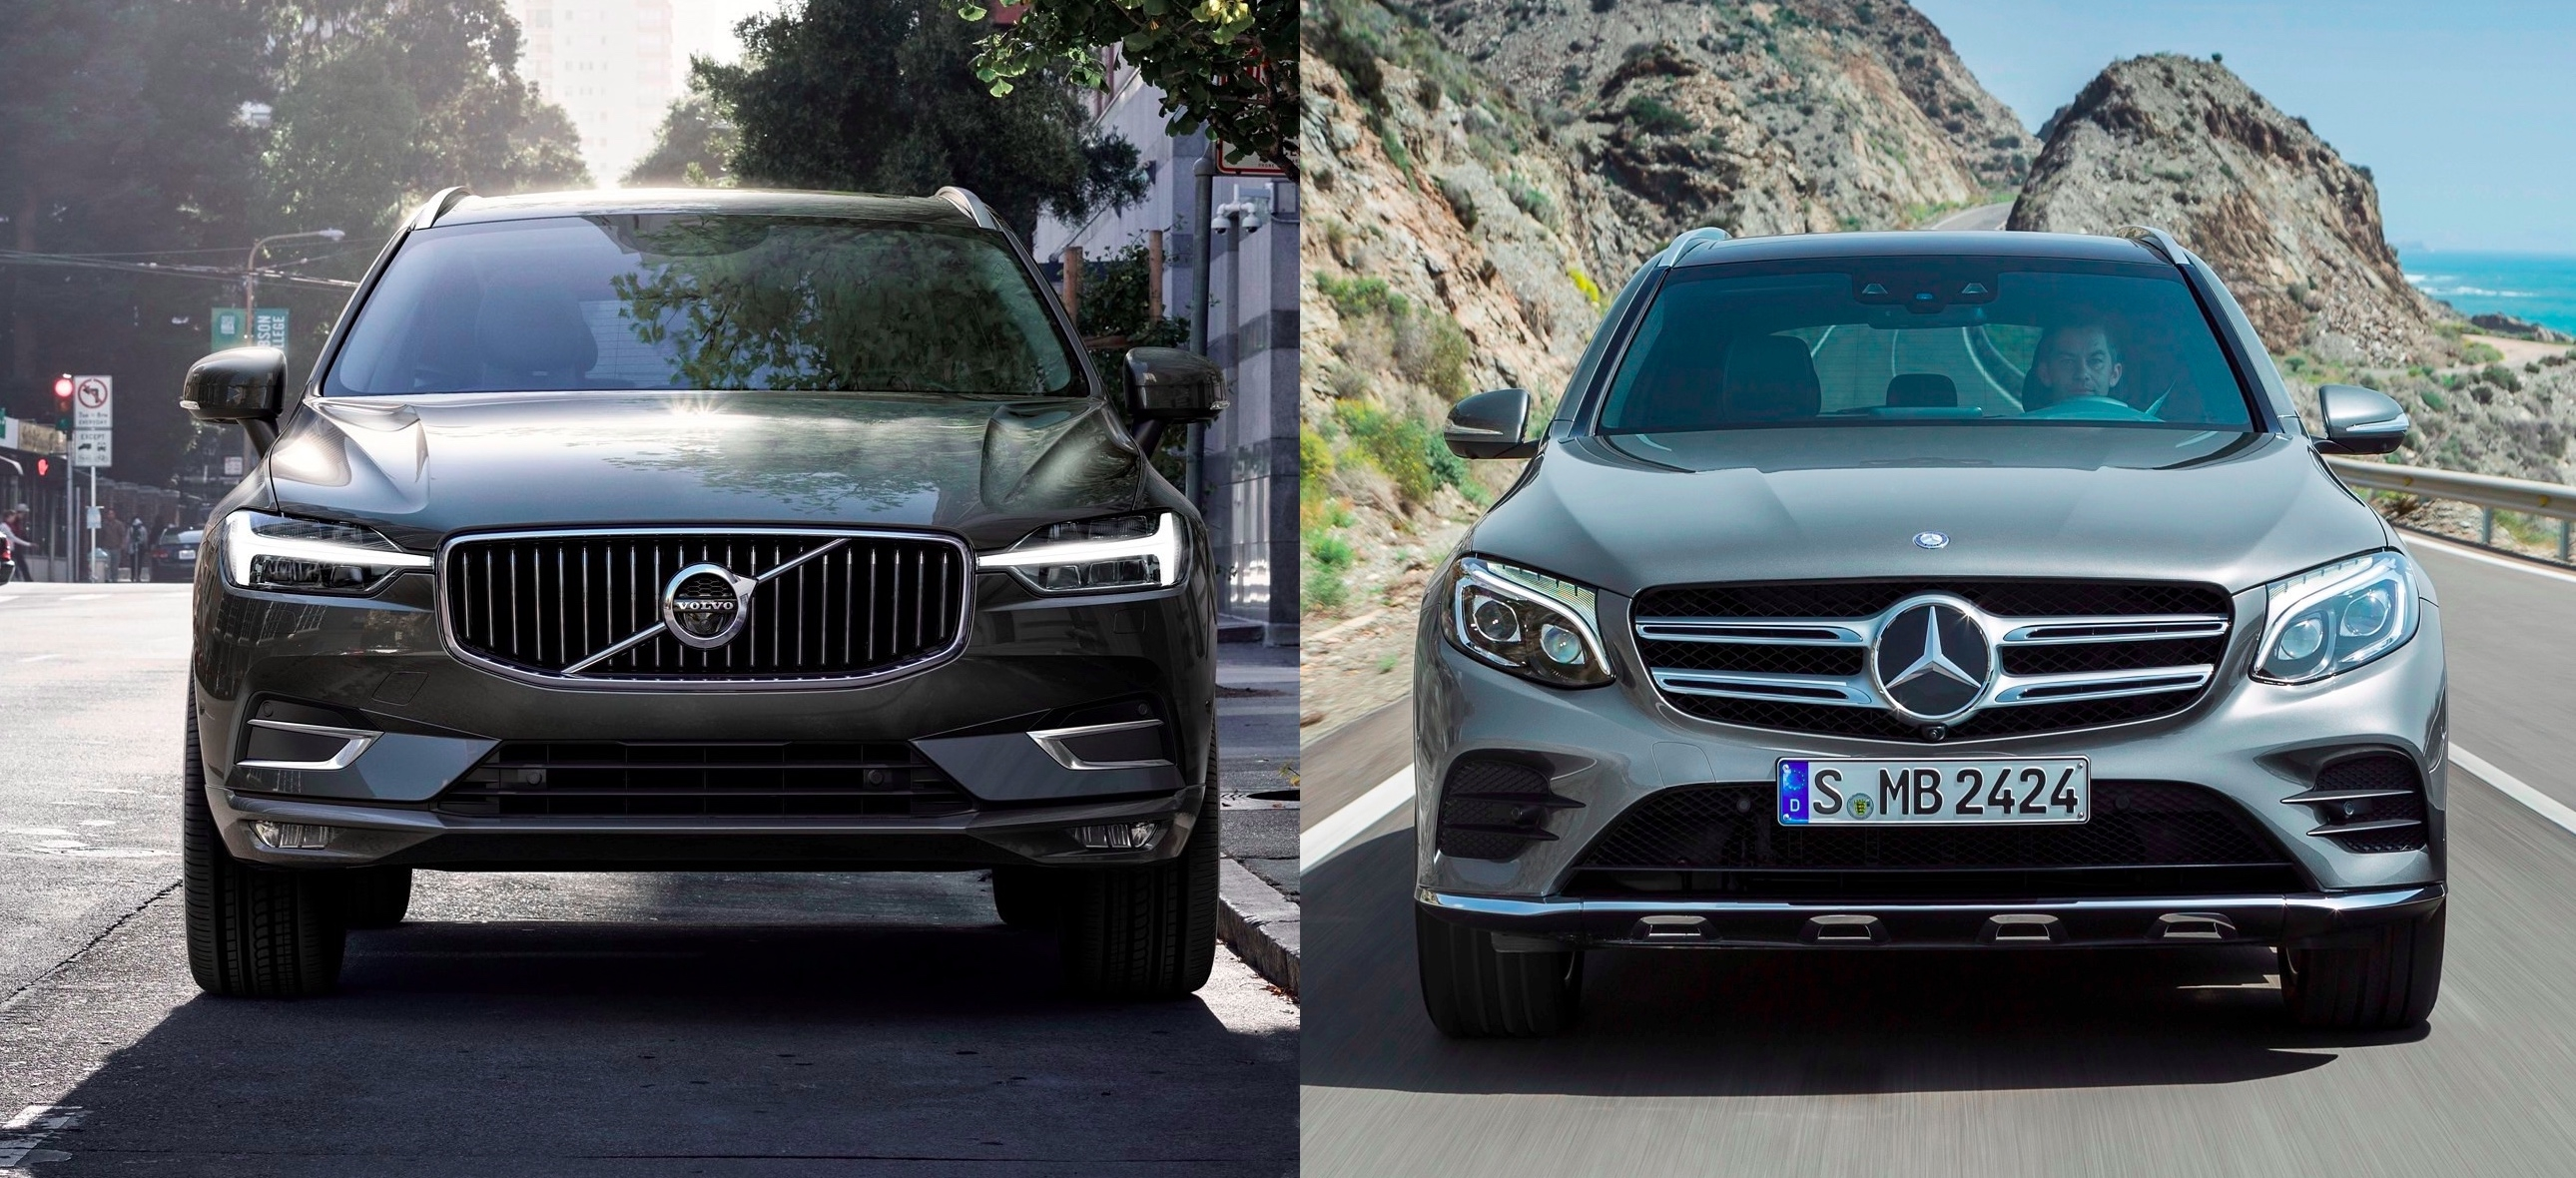 match du salon de gen ve 2017 nouveau volvo xc60 vs mercedes glc. Black Bedroom Furniture Sets. Home Design Ideas